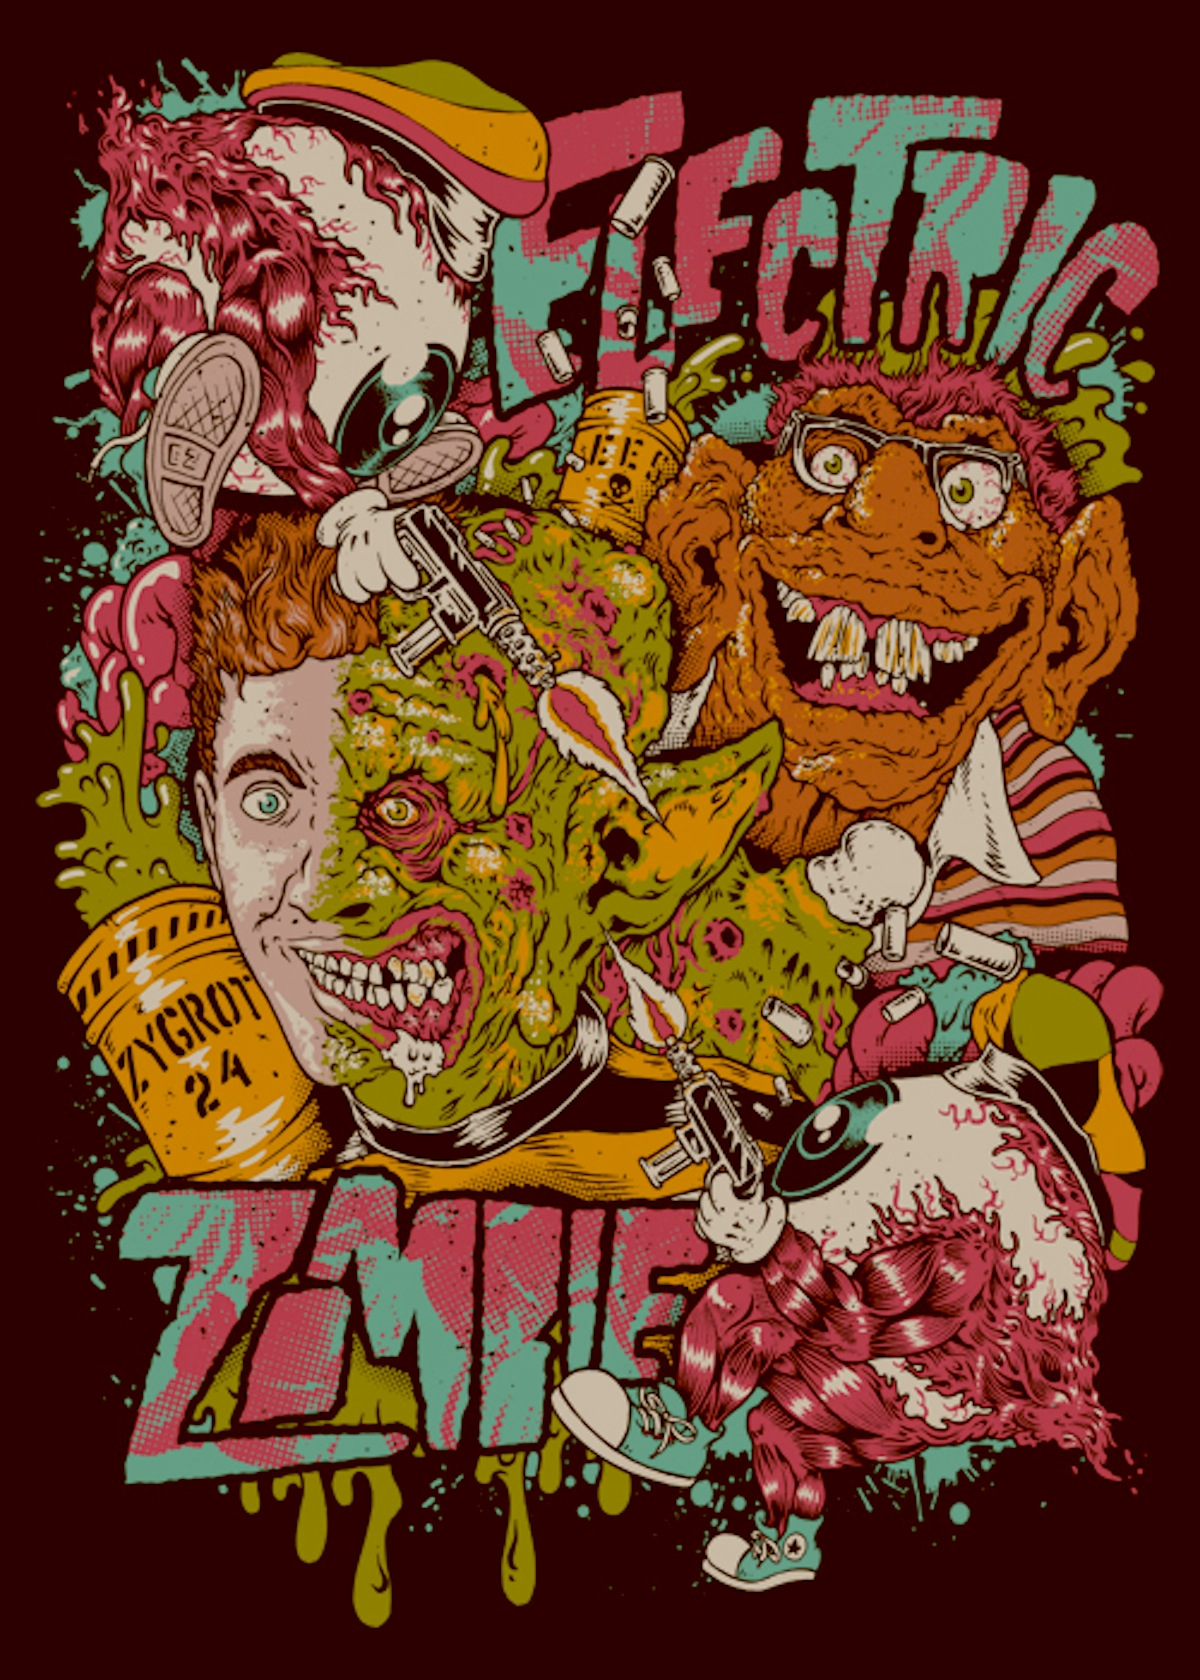 Freaked illustrated movie poster Electric Zombie Freekshow with extra Zygrot 24